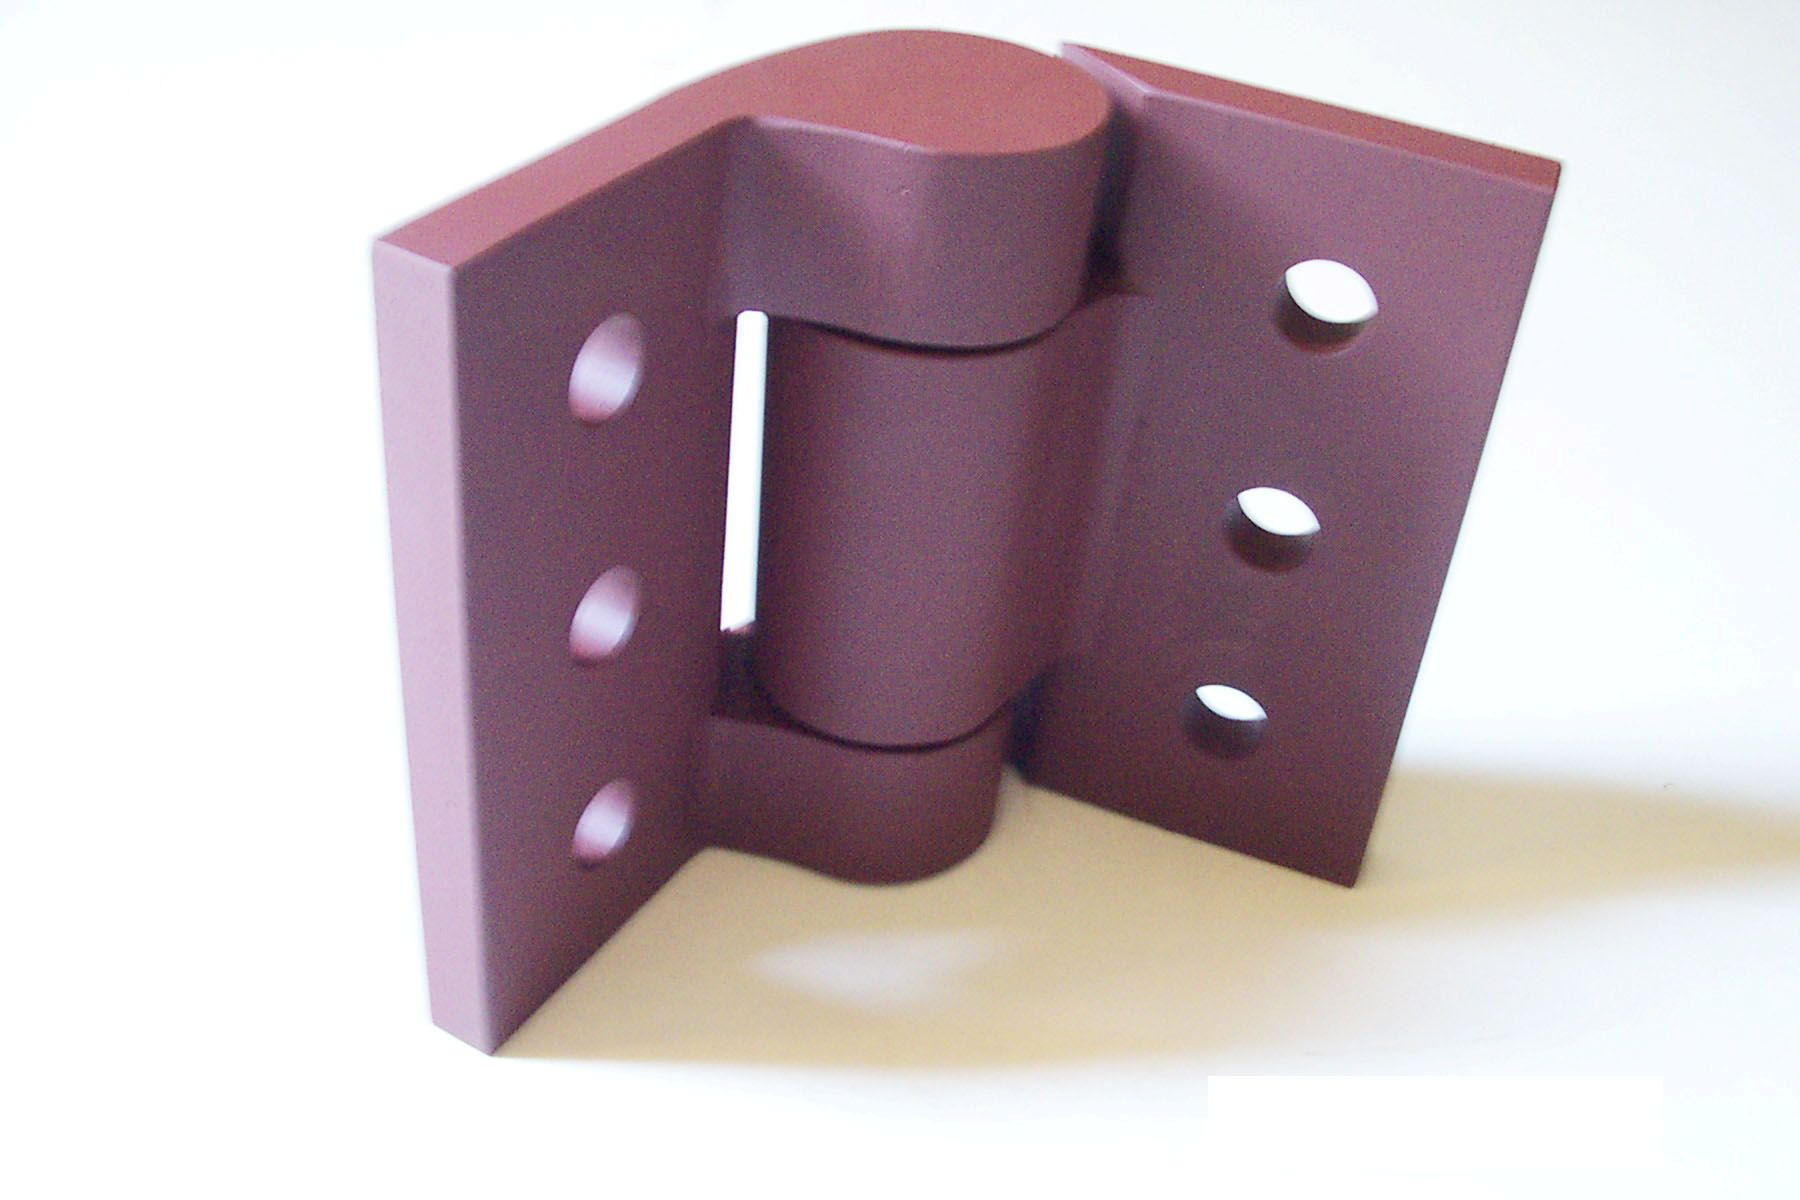 Types of security hinges